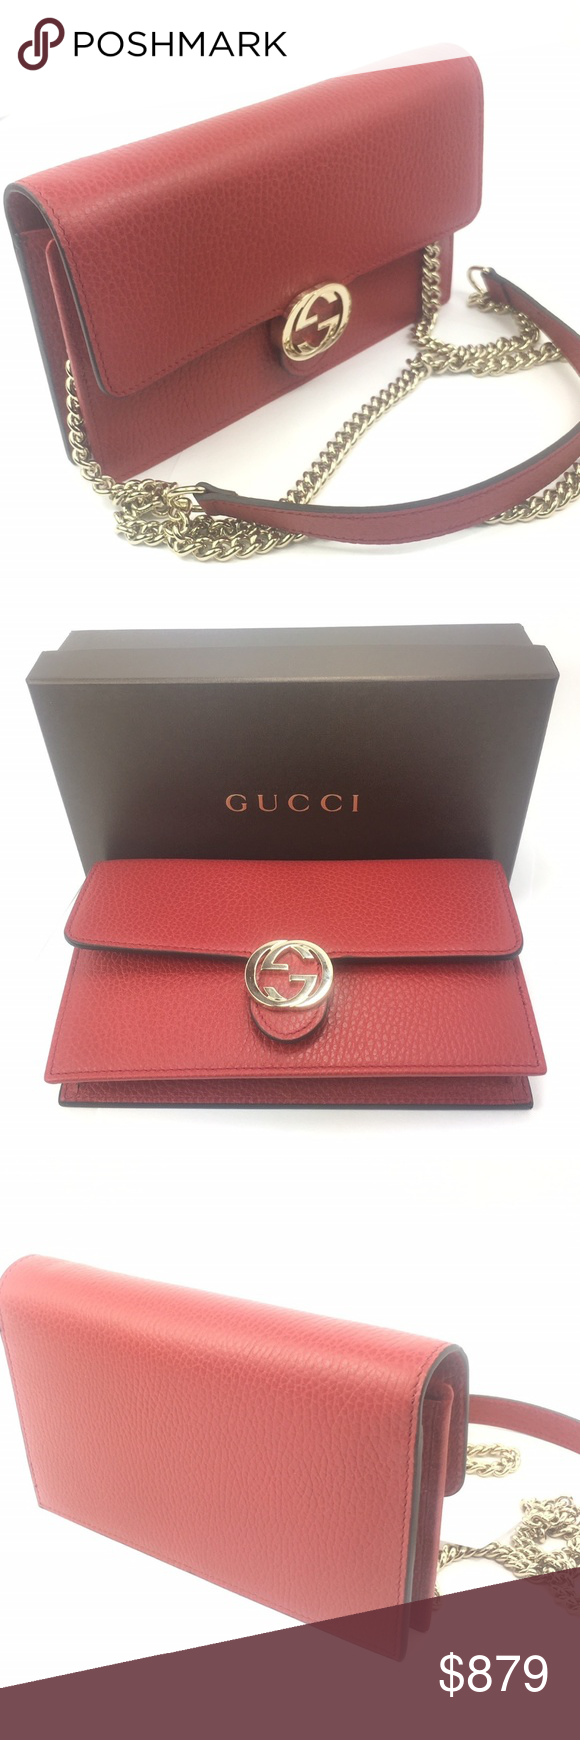 0173950ed Gucci #510314 GG Closure Chain Crossbody Wallet - Red Textured Leather  Exterior (Gucci calls